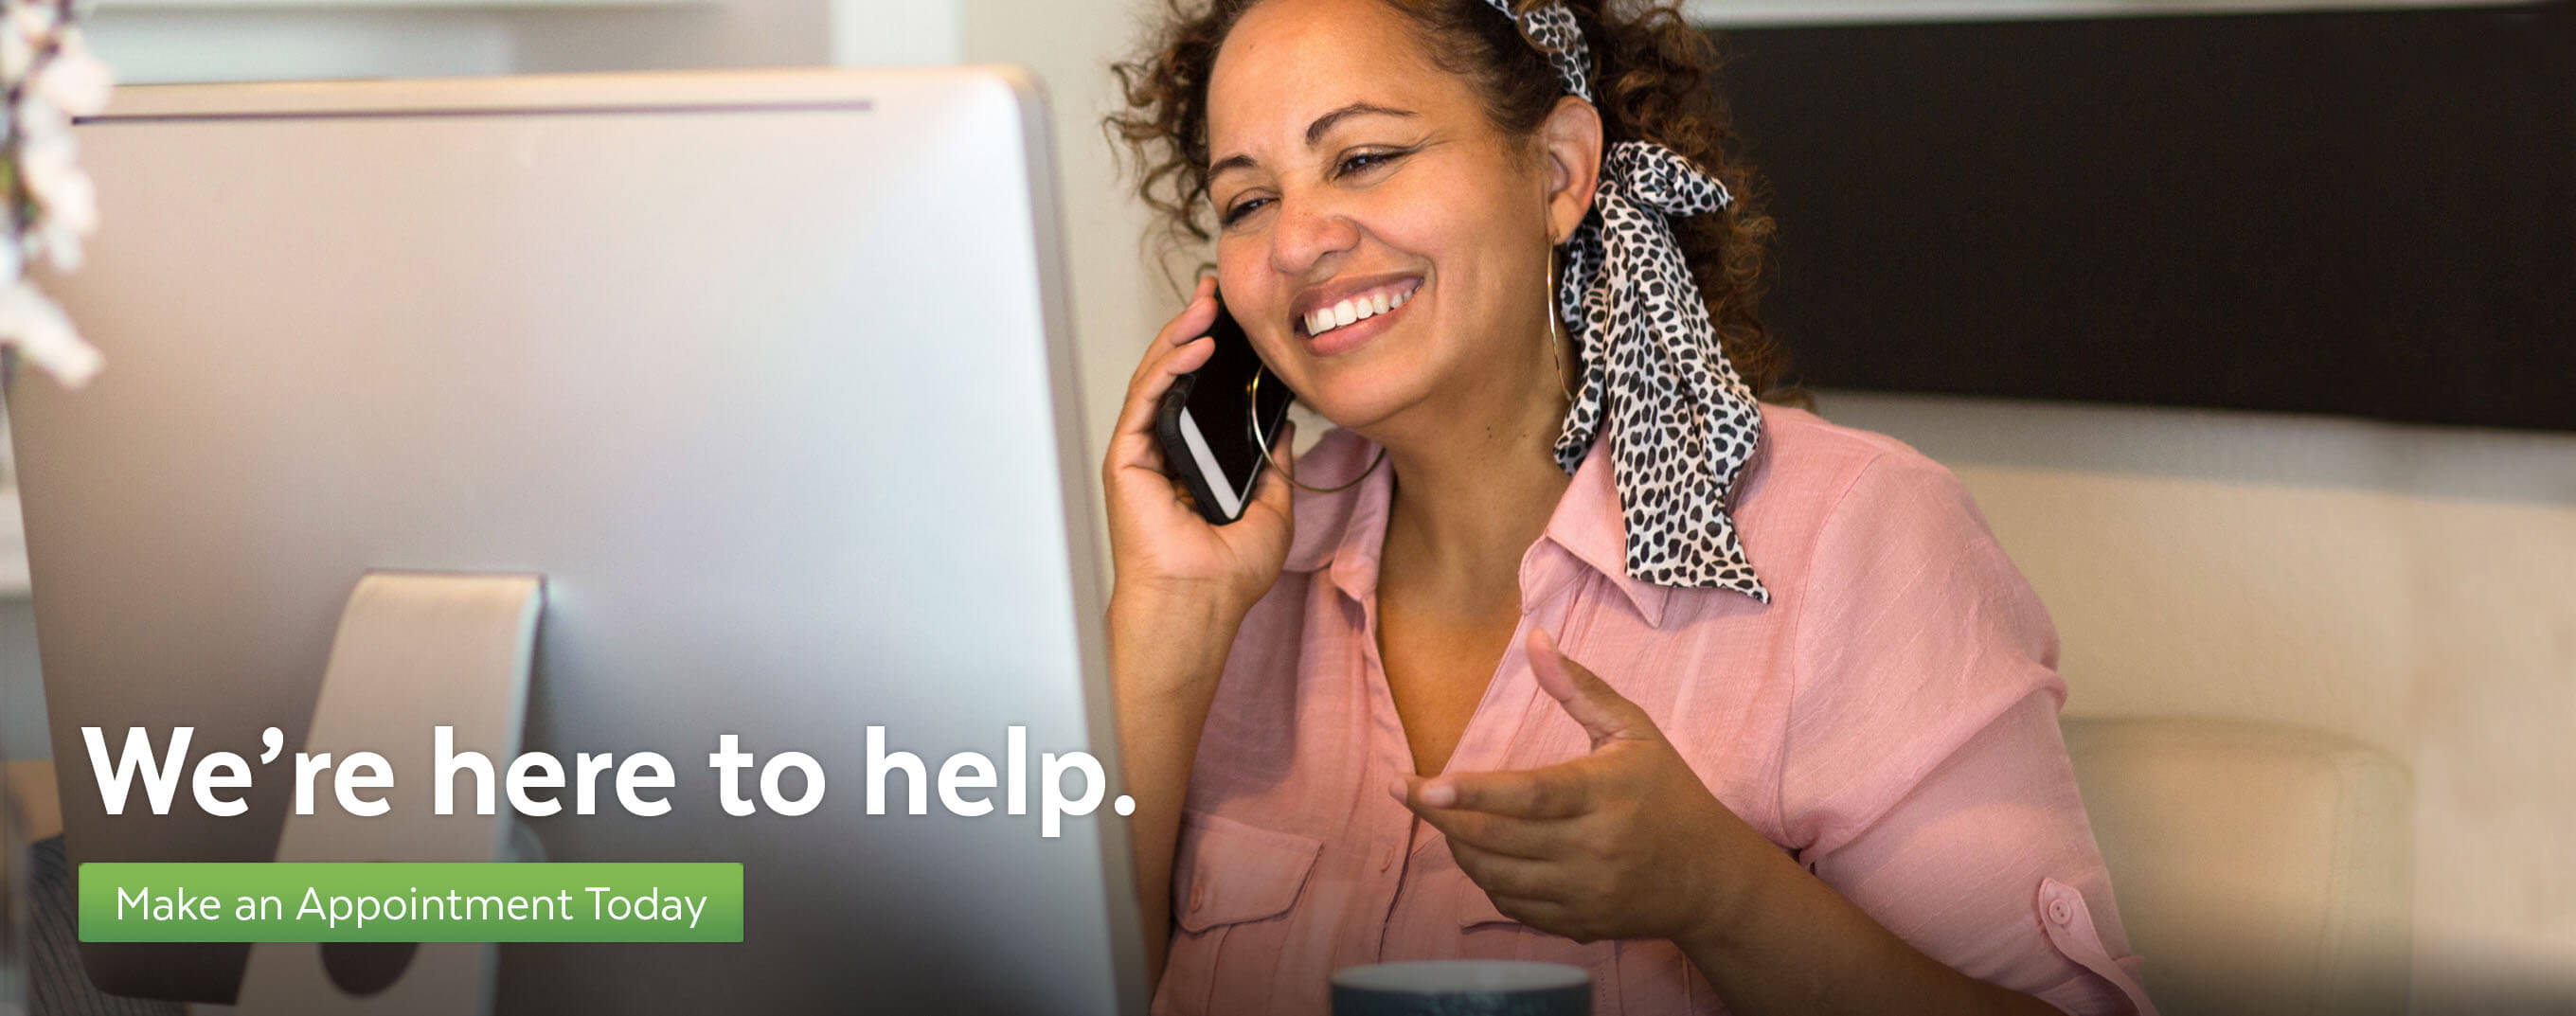 We're here to help. Make an appointment today.